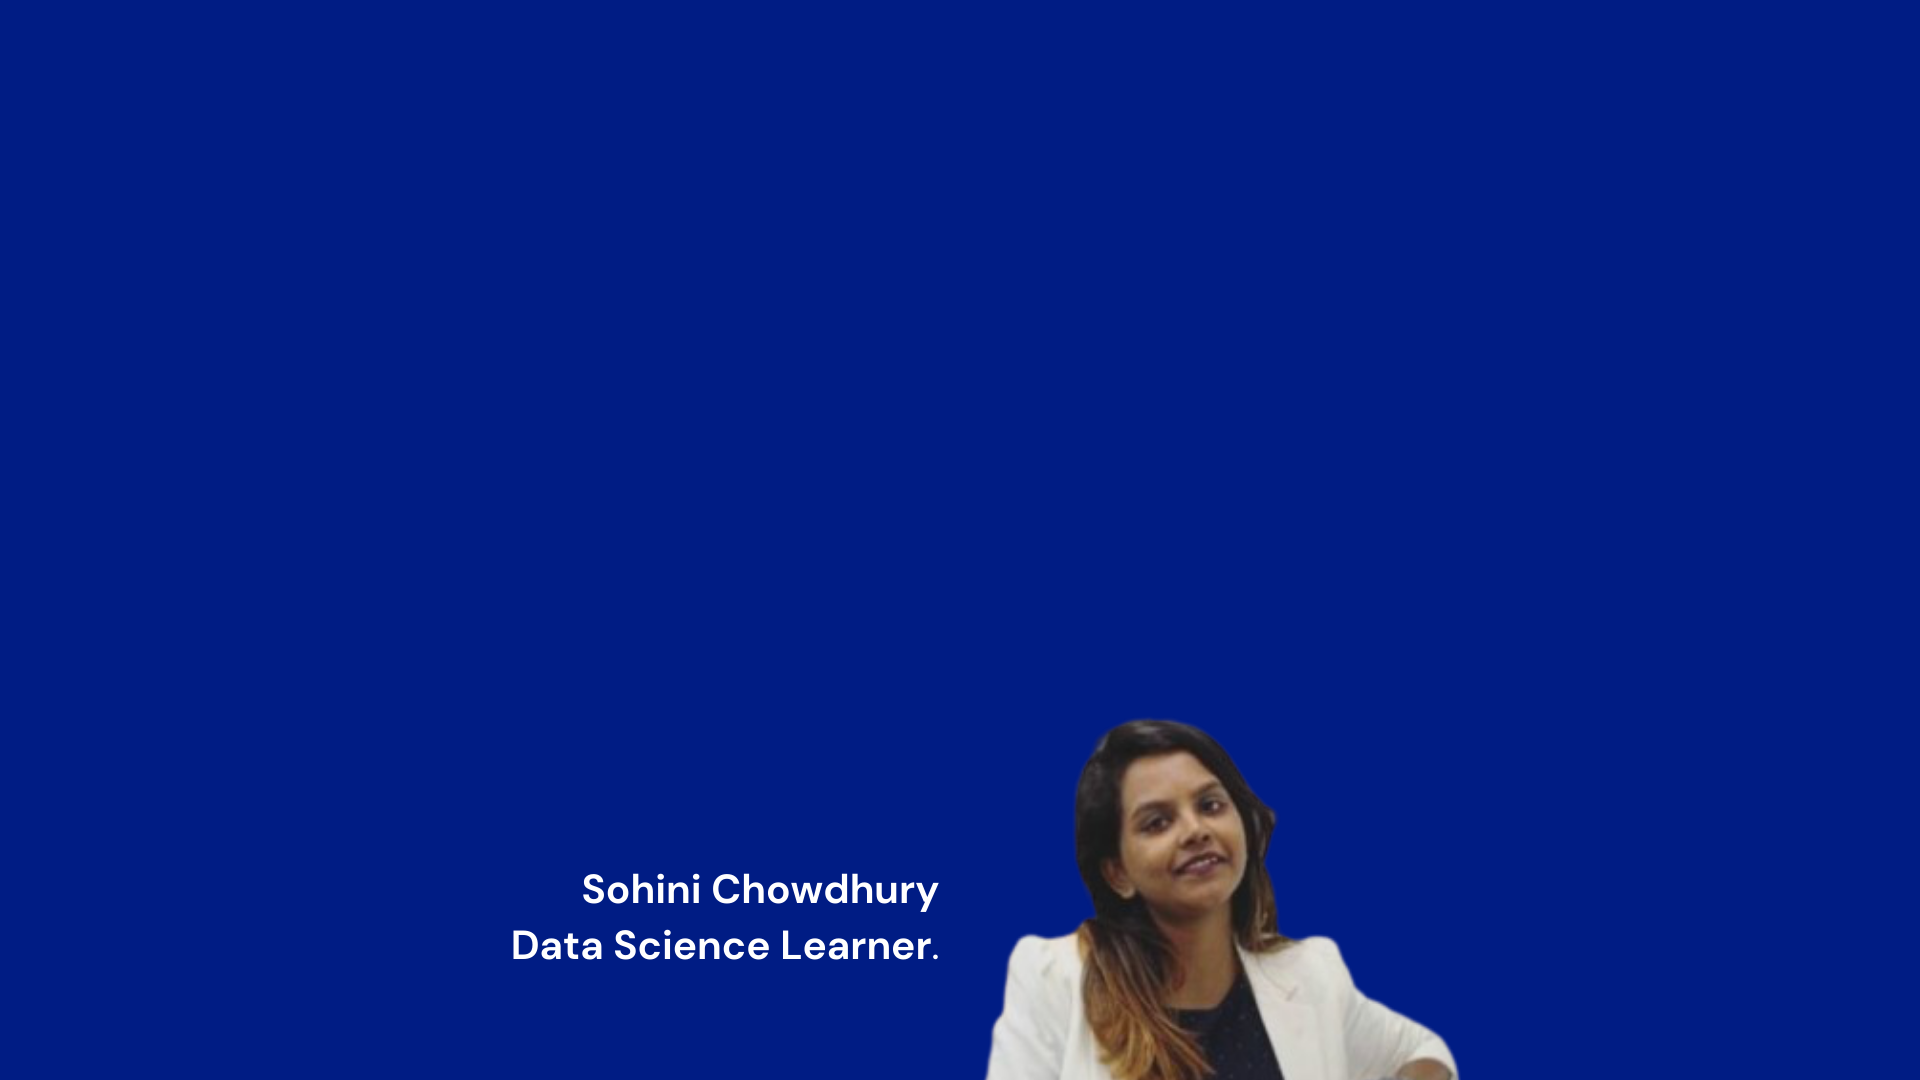 From an MBA in Public System to pursuing Data Science